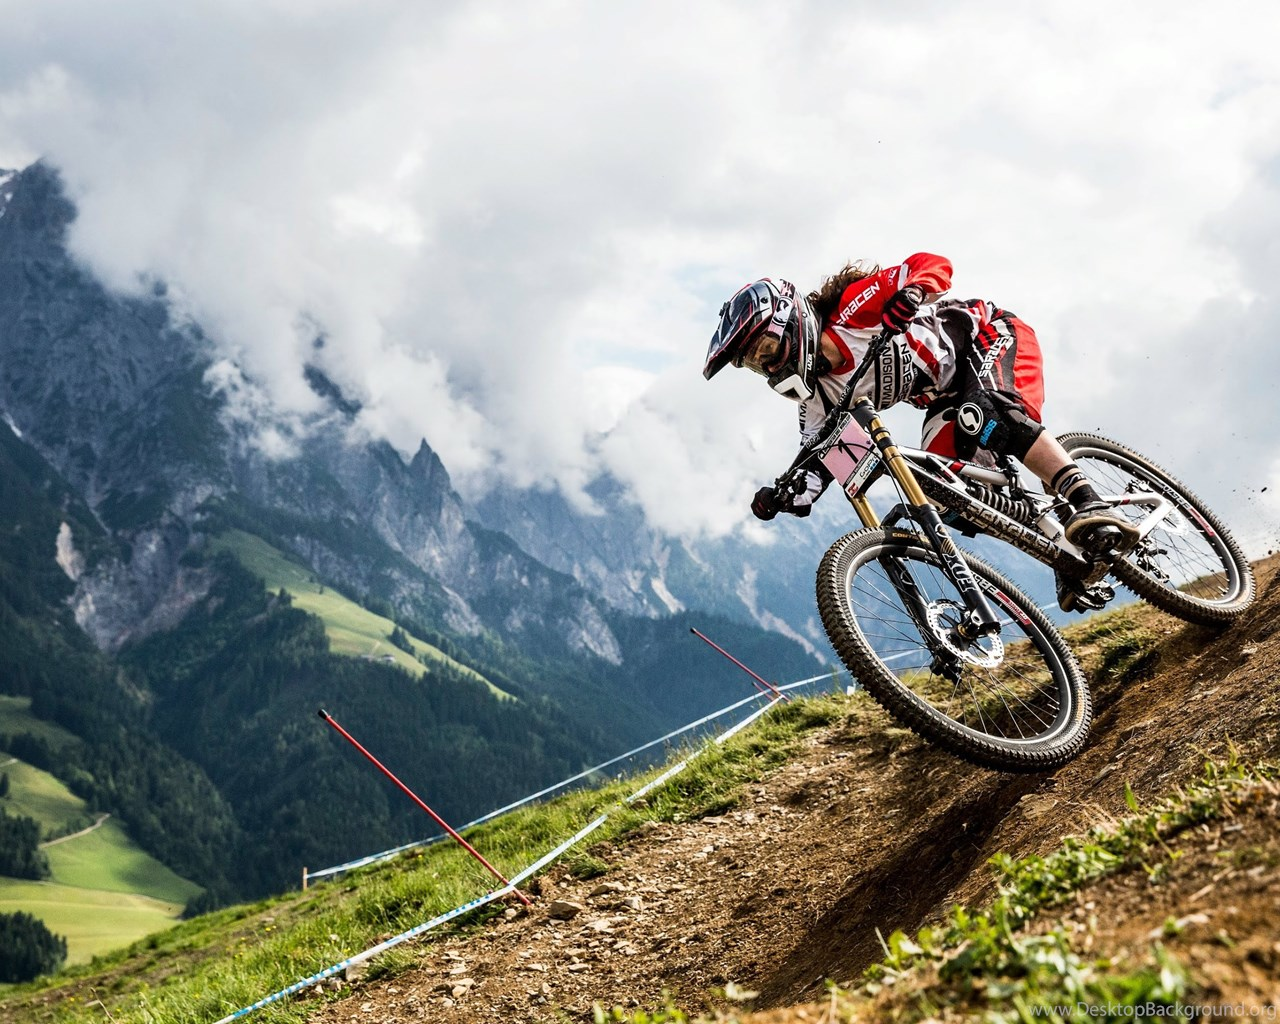 Mountain bike downhill wallpapers hd free desktop - Free download hd wallpapers for pc 1280x1024 ...